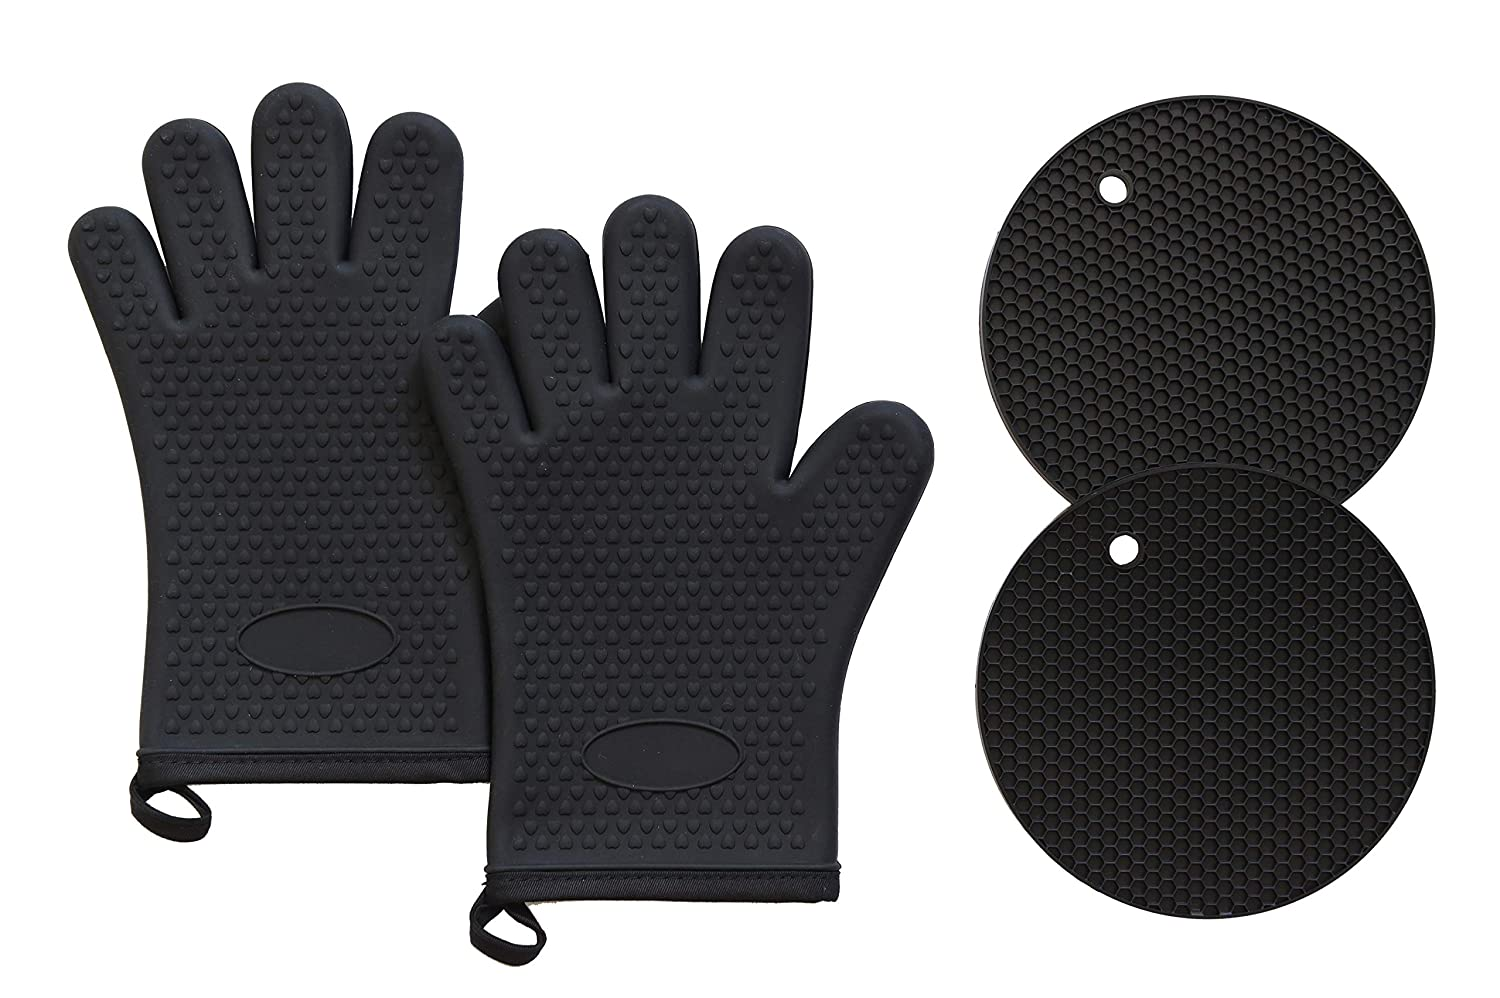 Q's INN Silicone Oven Mitts and Potholders Kitchen Round Trivet Mats | Heat Resistant 450°F | Oven Mitt Non-Slip Textured Grip Pot Holders Set of 2 Gloves and 2 trivets - Black